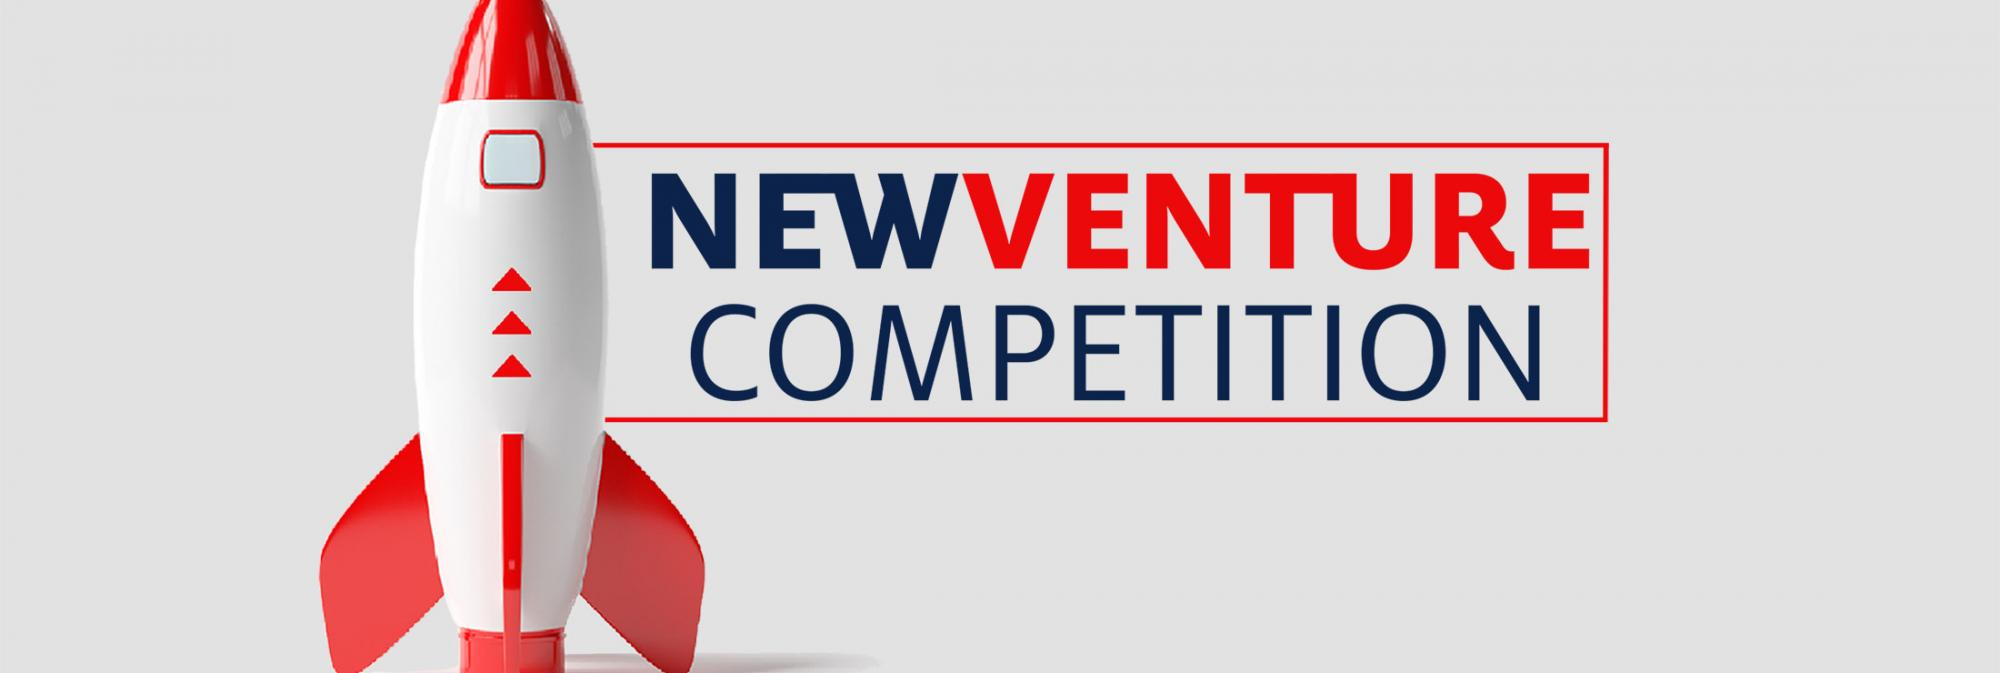 New Venture Competition